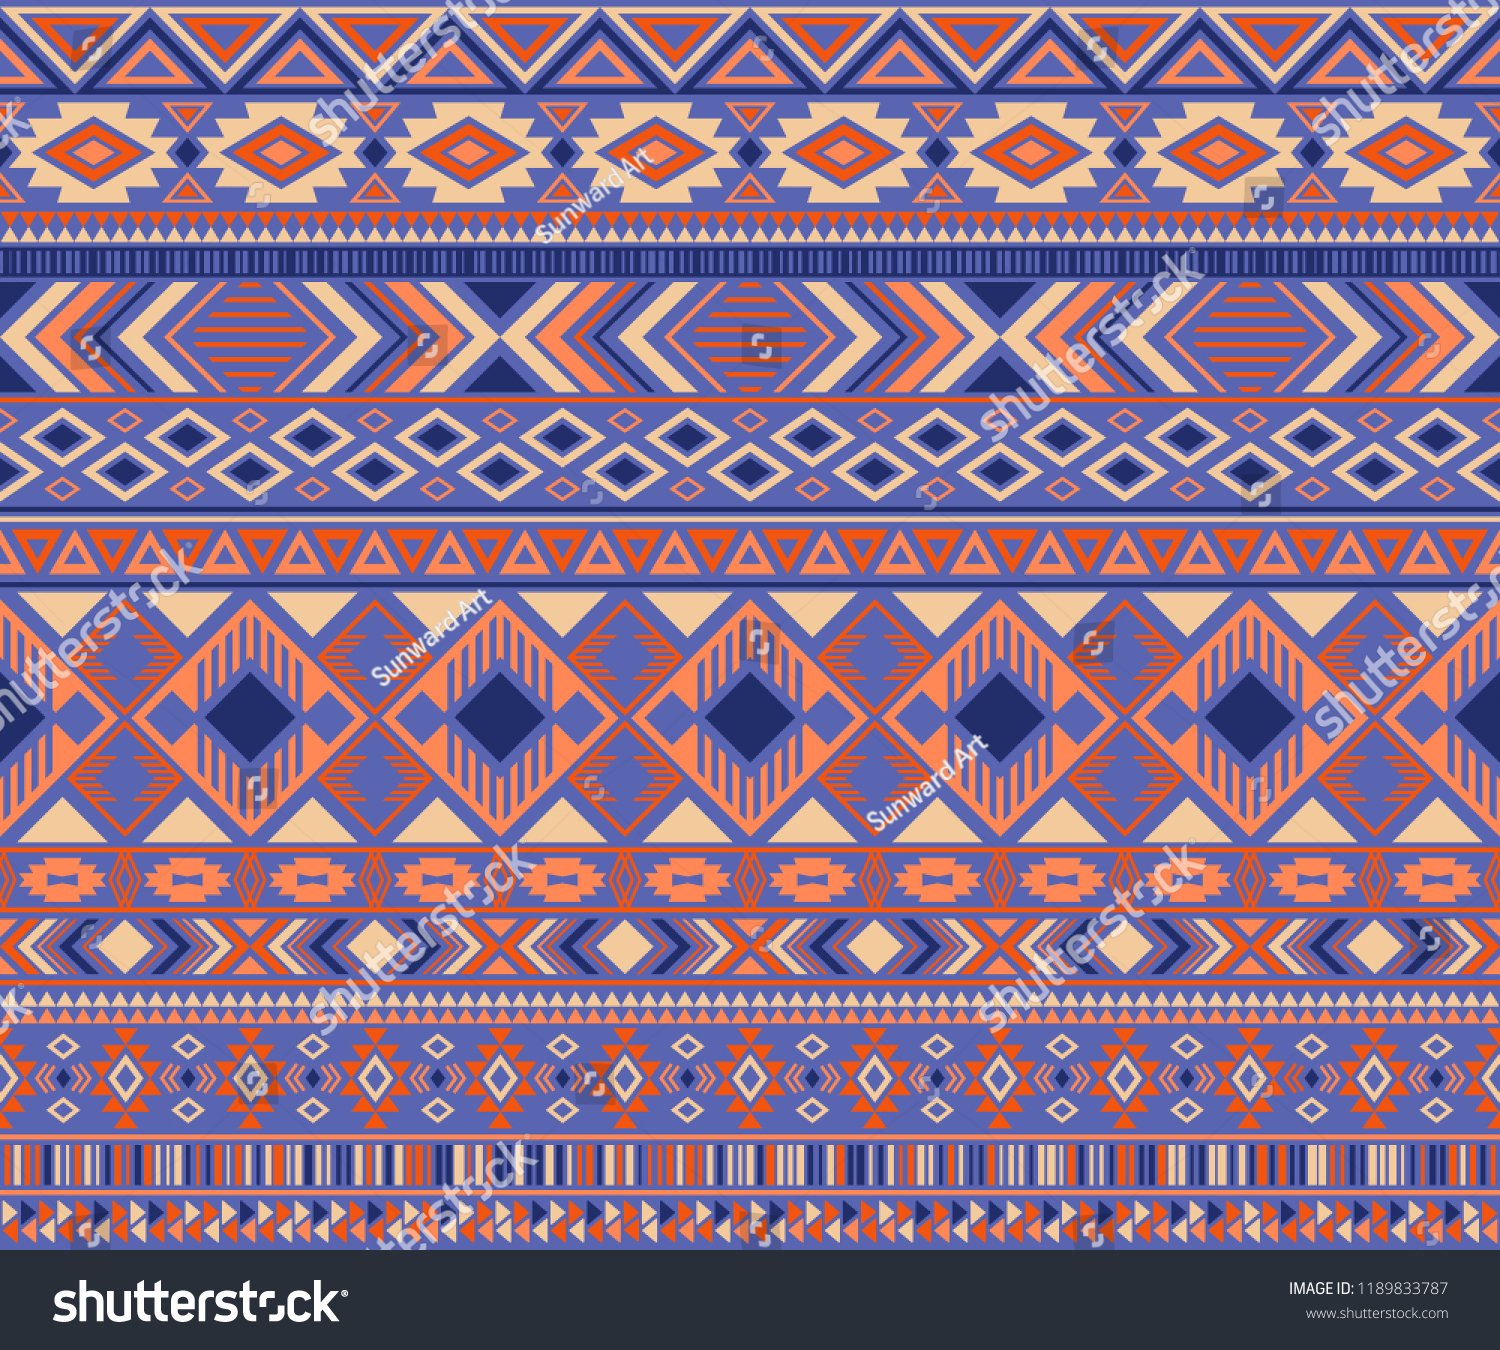 1500x1350 - Cool Tribal Backgrounds 50